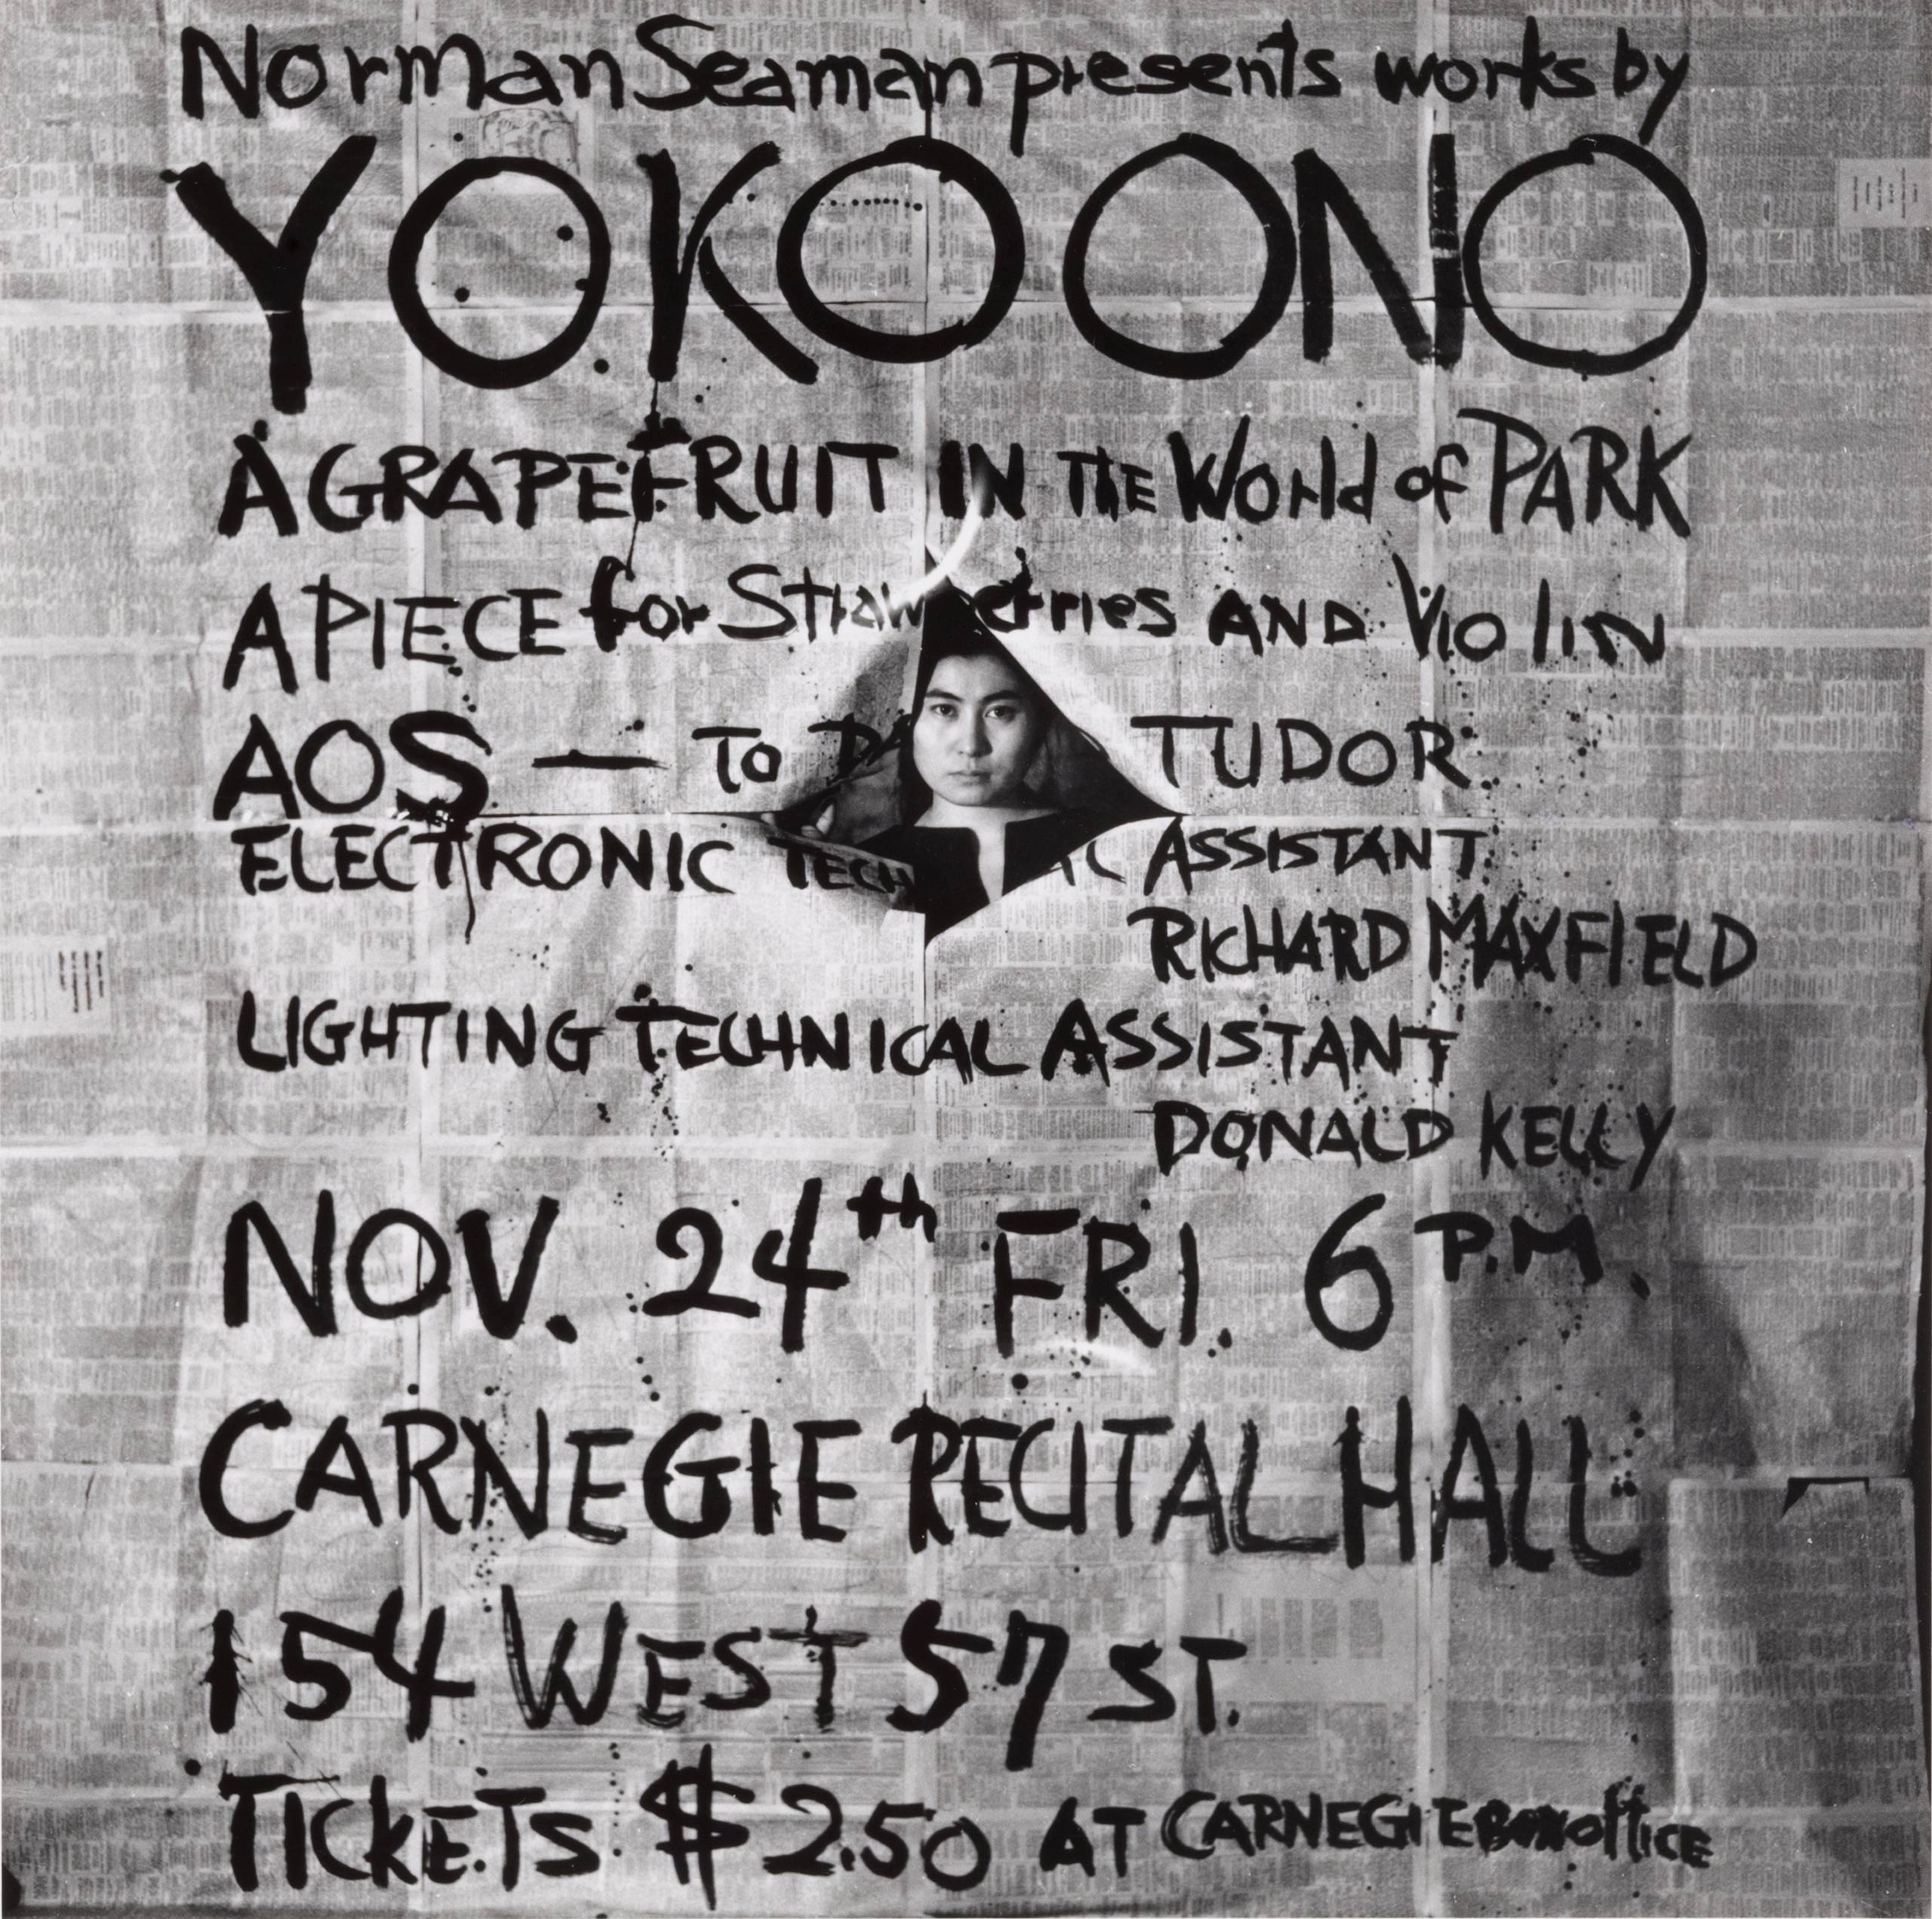 <i>Works by Yoko Ono</i> poster for Yoko Ono's performance at the Carnegie Recital Hall in New York on Nov. 24, 1961.